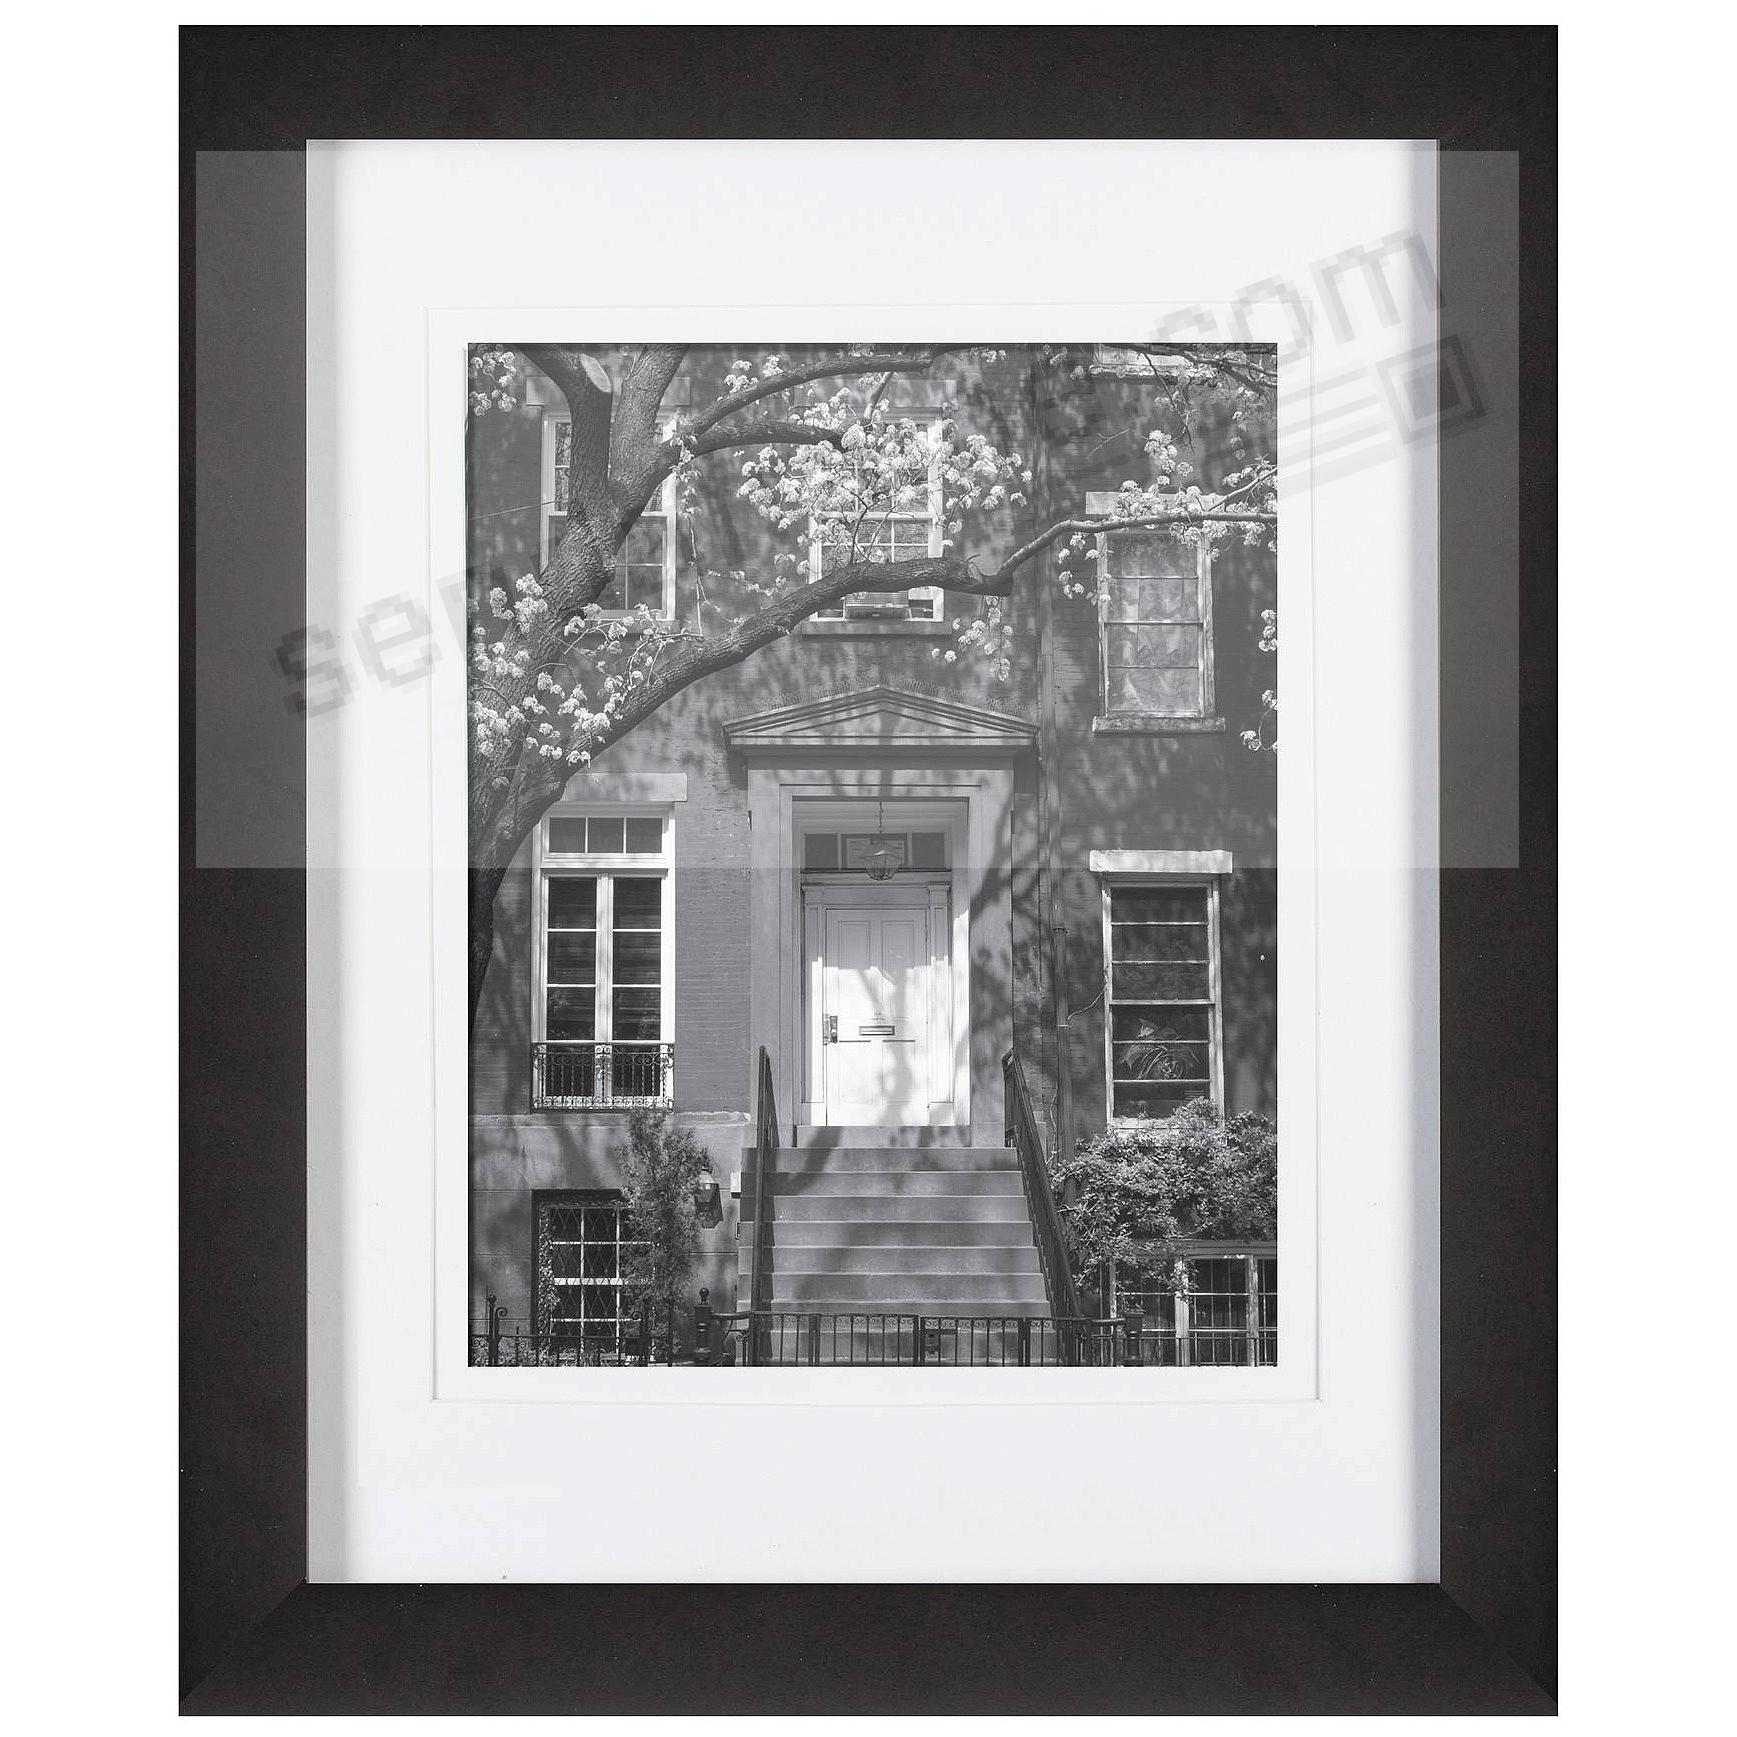 Black Wood Wall Frame 11x14 matted to 8x10 by Gallery Solutions ...